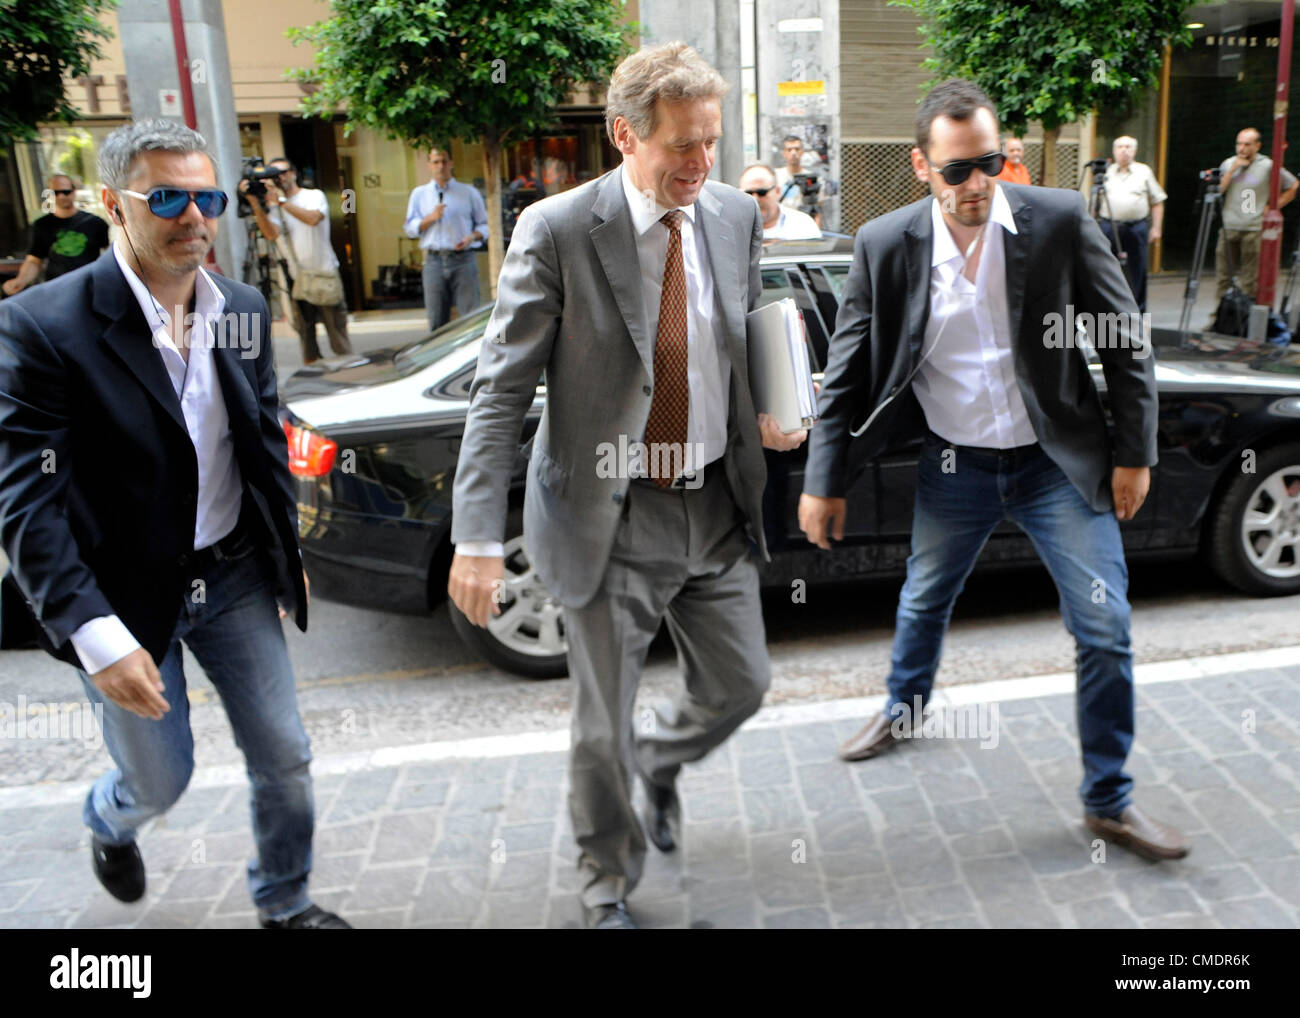 July 26, 2012. Athens, Greece. Poul Thomsen, mission Chief, International Monetary Fund (IMF) arrives at the Ministry - Stock Image